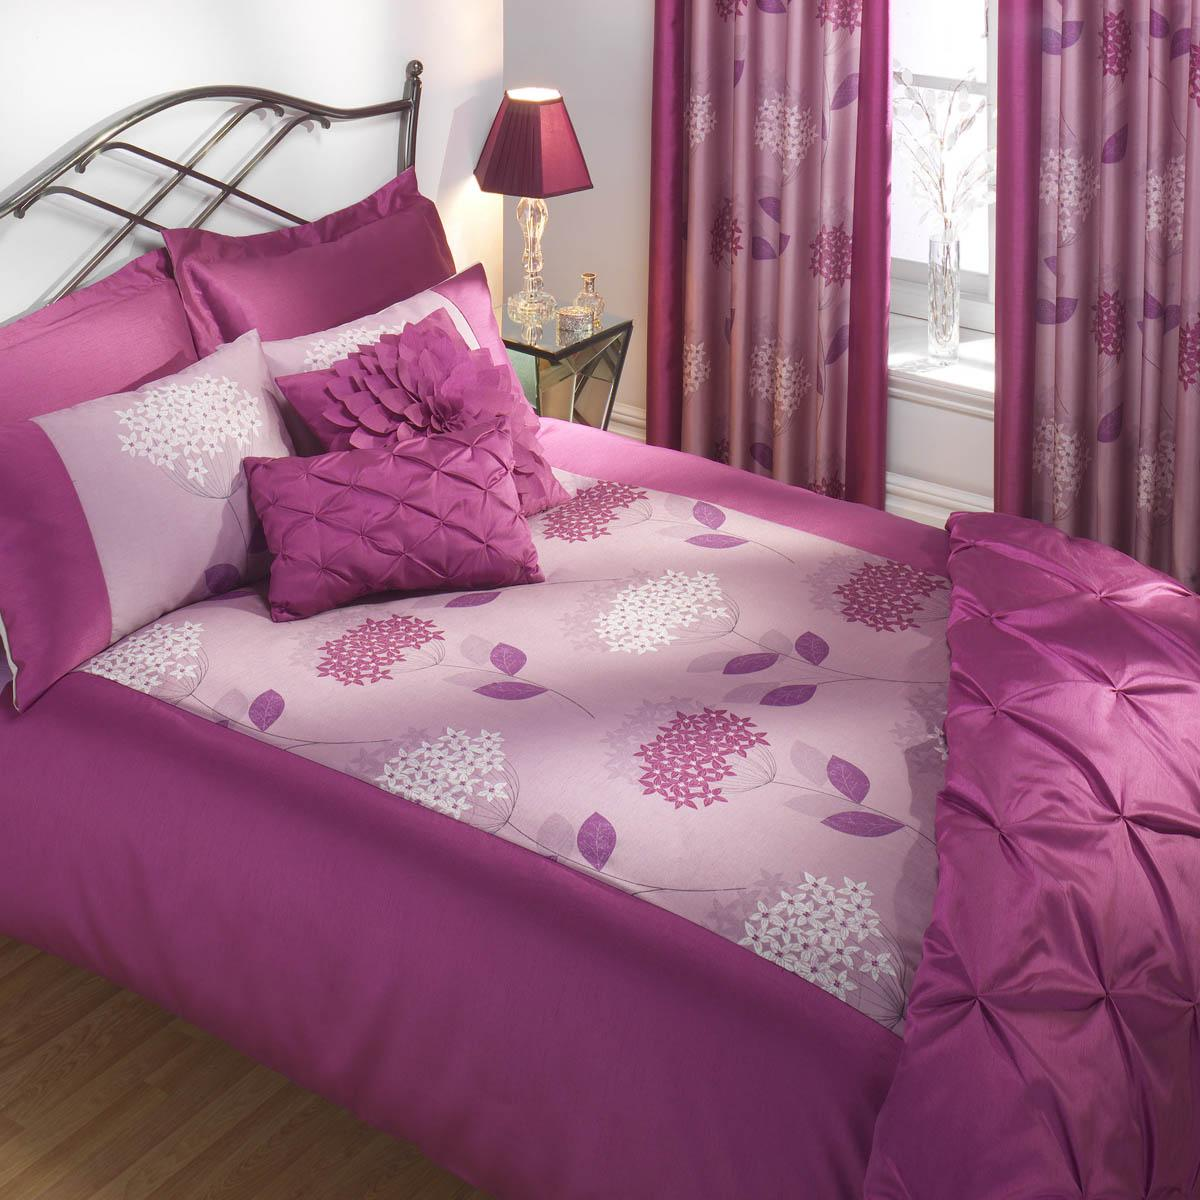 Pink Julian Charles Wildflower Duvet Set